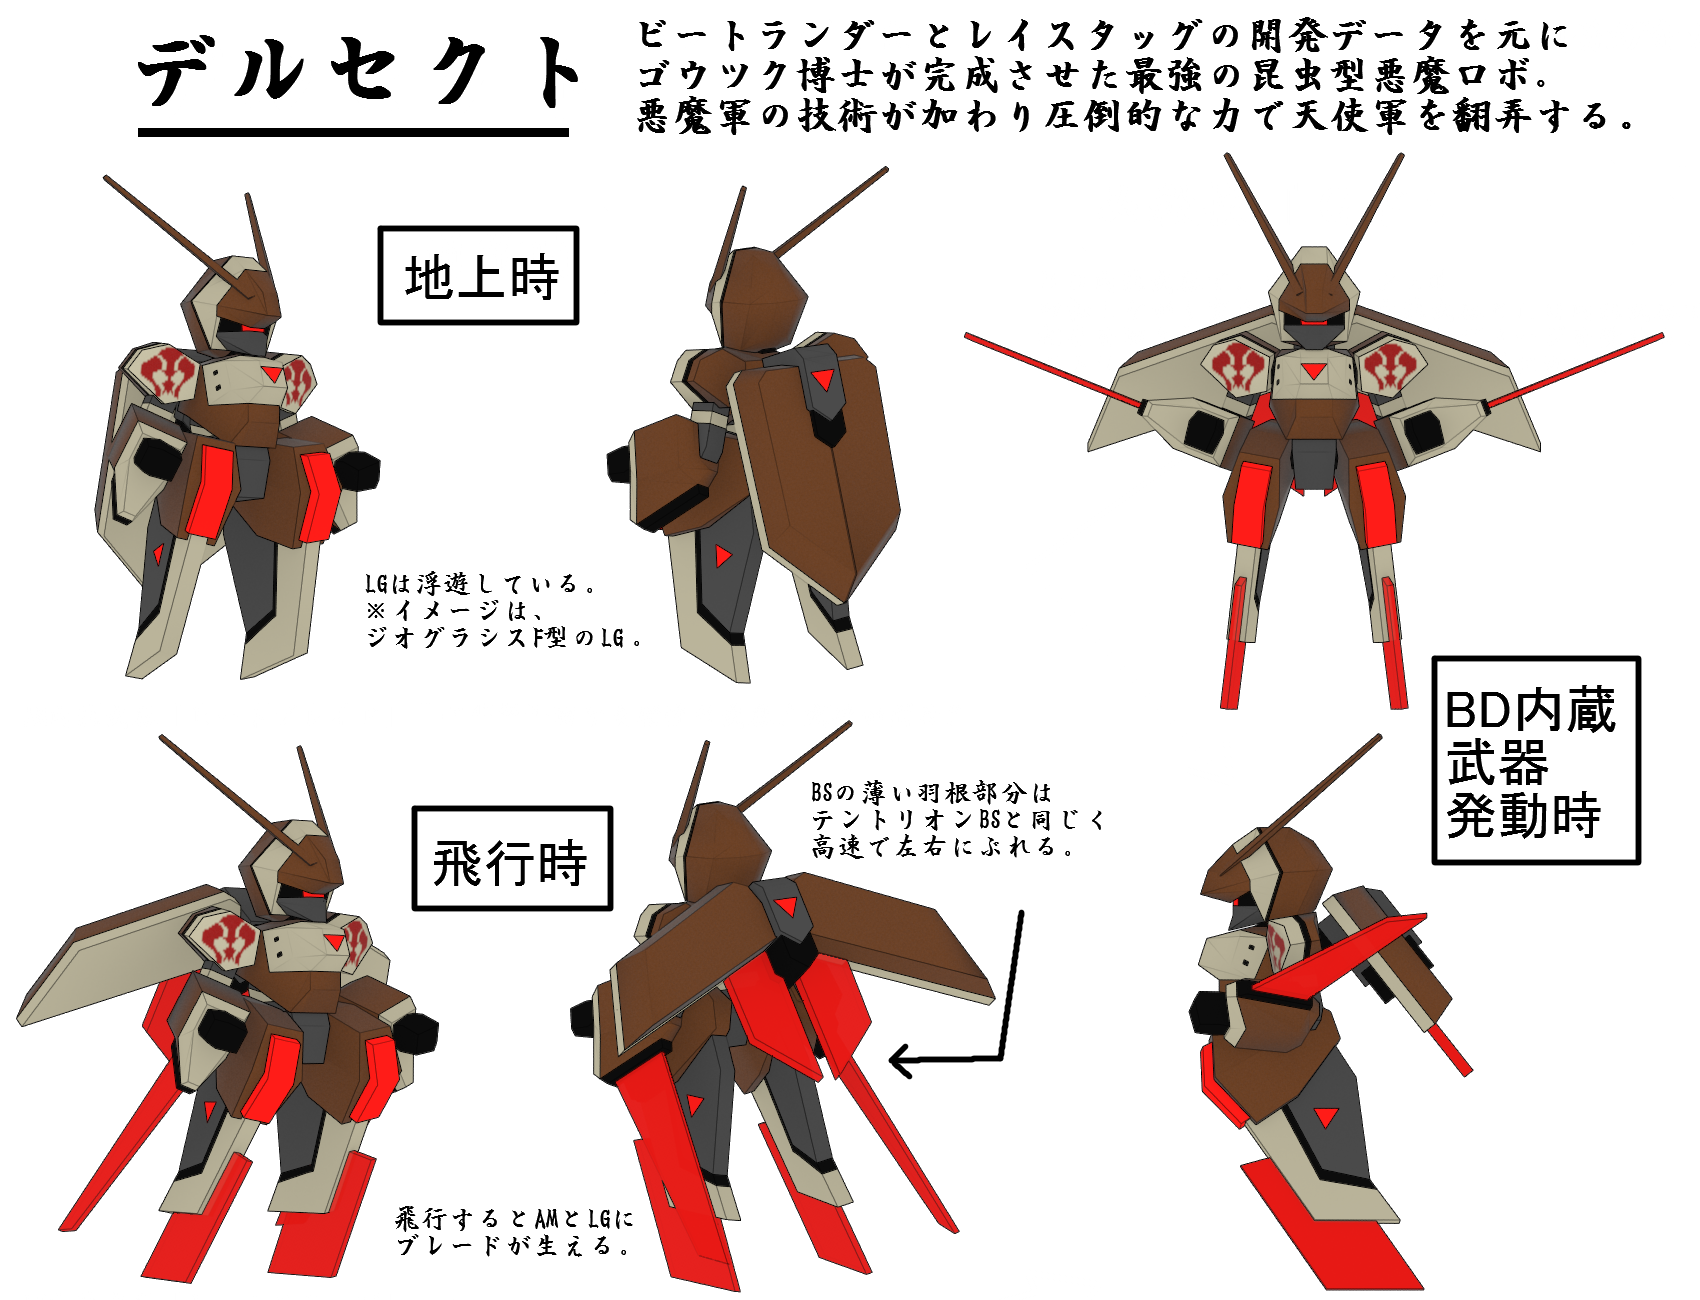 weapon and enemy design contest results Img.php?filename=tc_1339558_1_1384965208